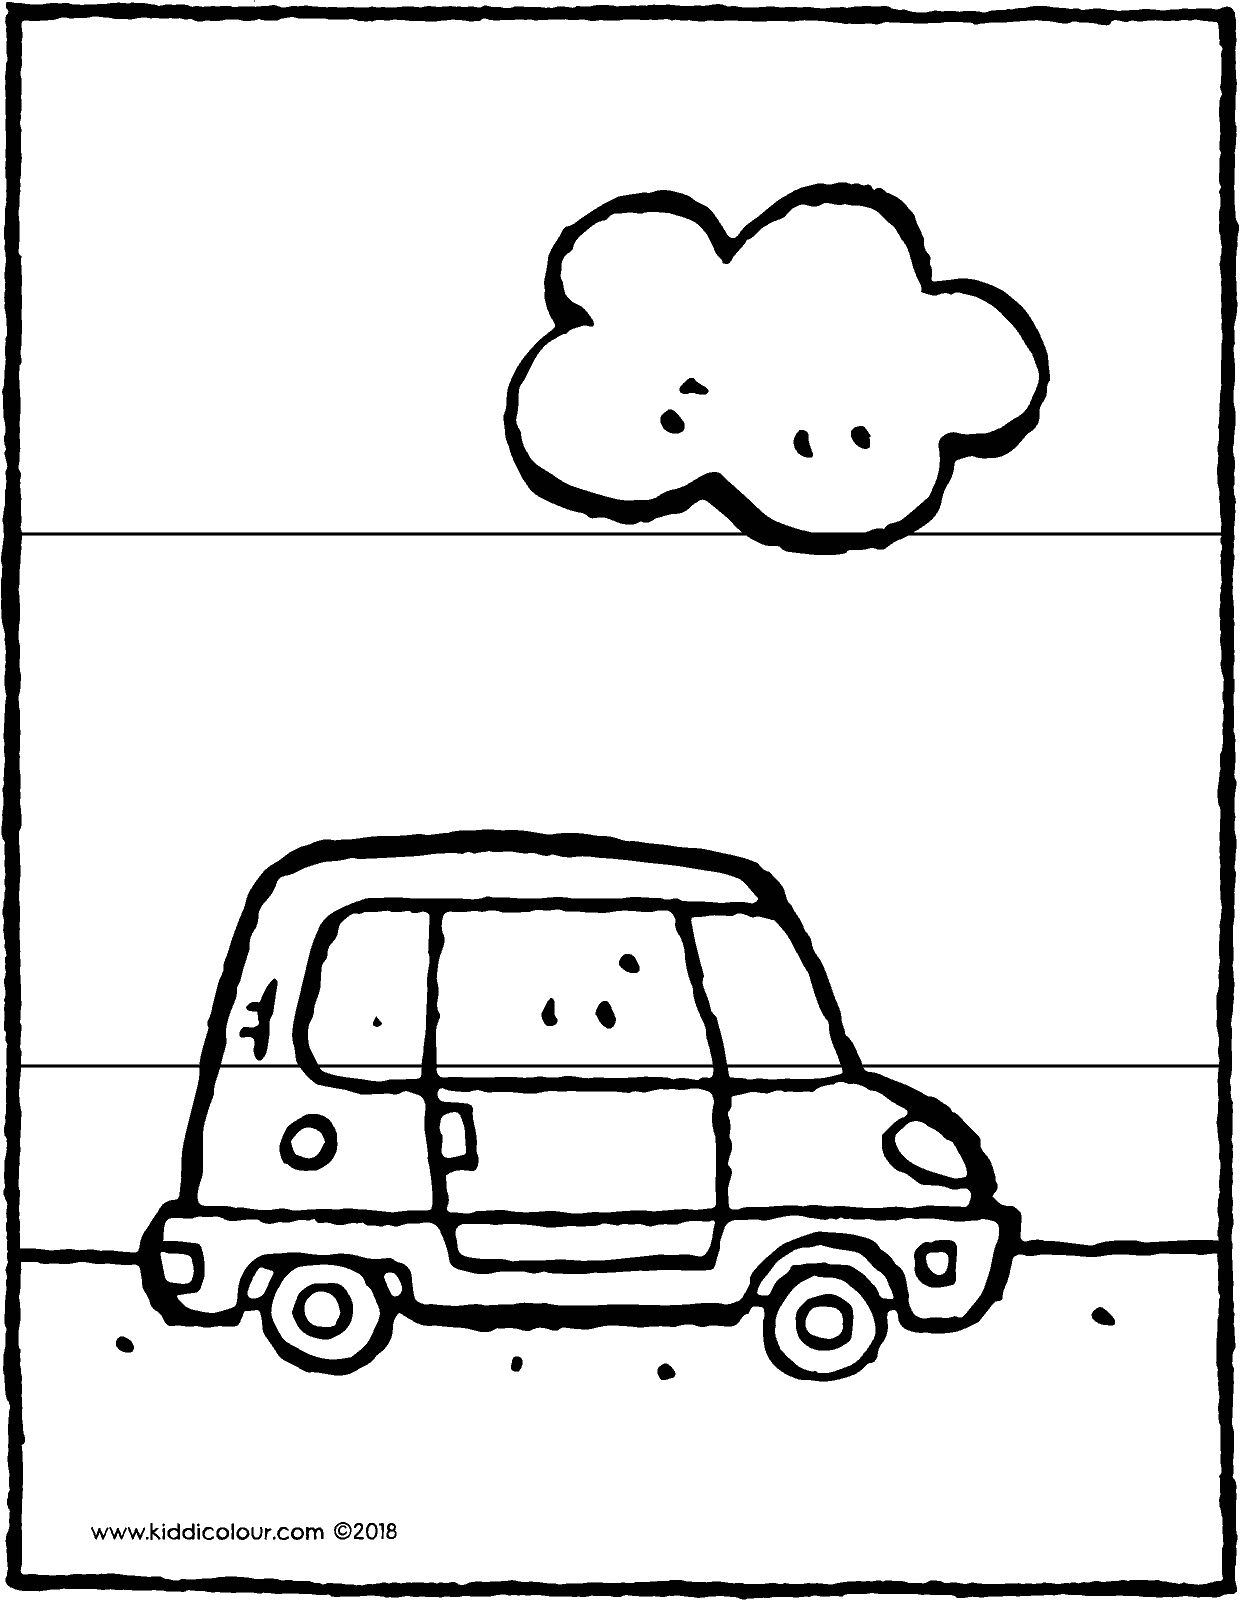 small car with cloud 3-piece puzzle colouring page drawing picture 01V